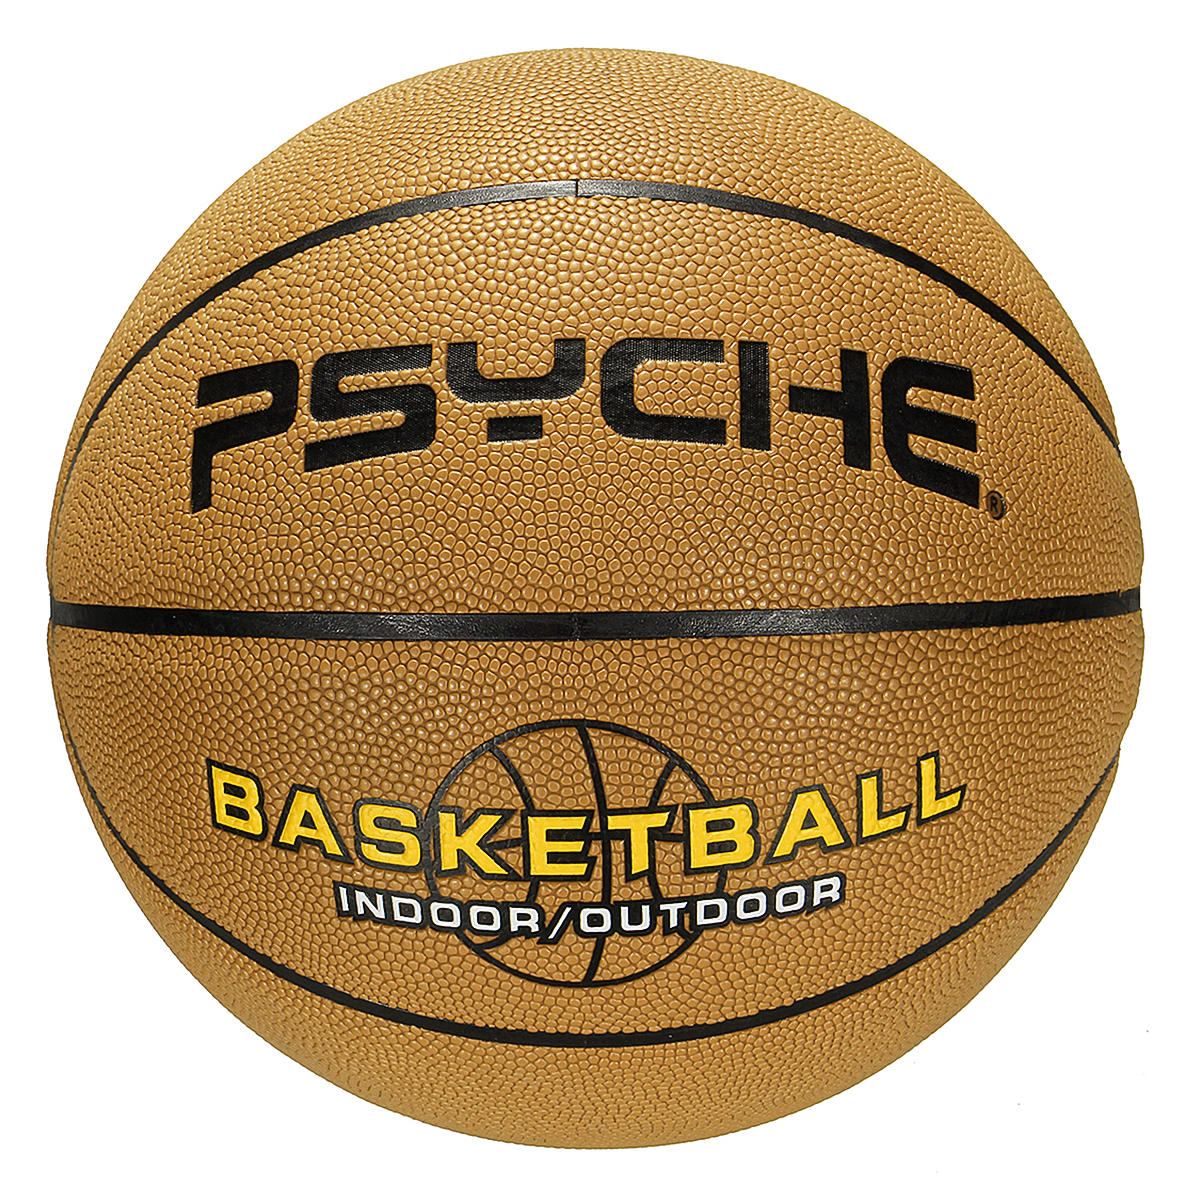 Official Size 7 PU Non slip Basketball Basquete Balls Game Sports Training Equipment FIBA Use GG7 GG7X GF7X - 4